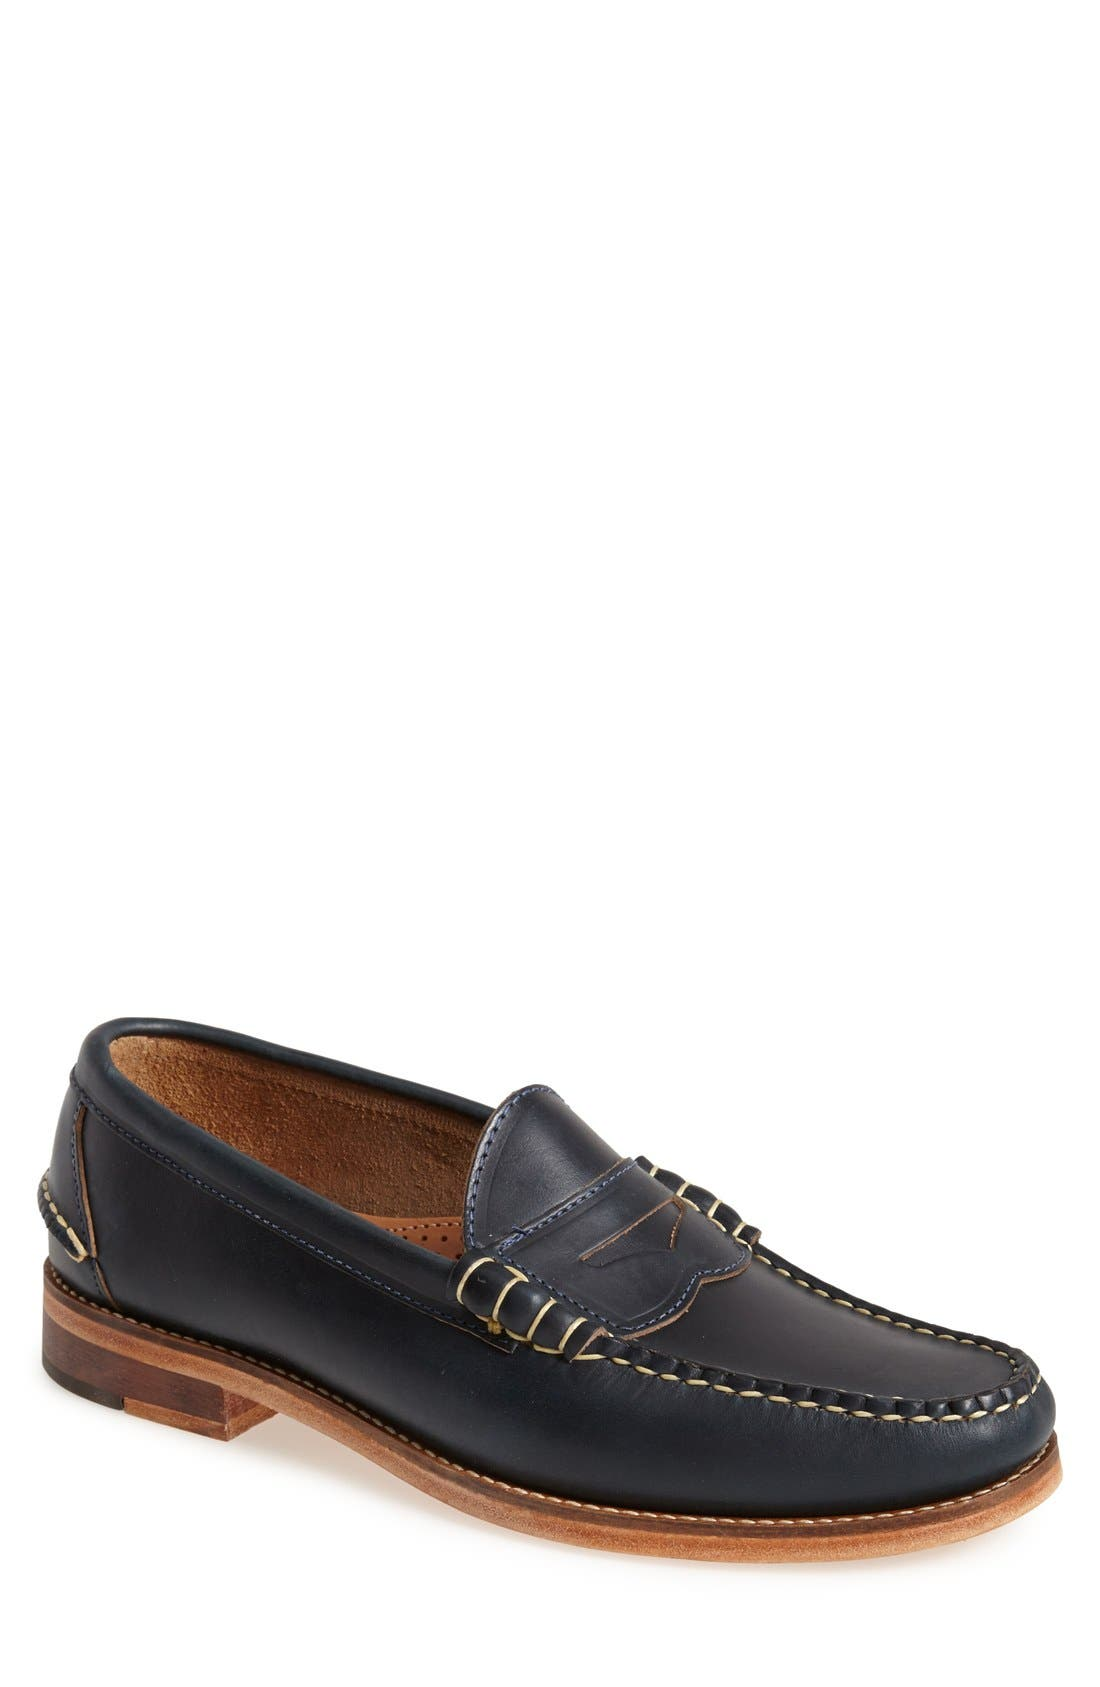 Beefroll Penny Loafer,                         Main,                         color, Navy